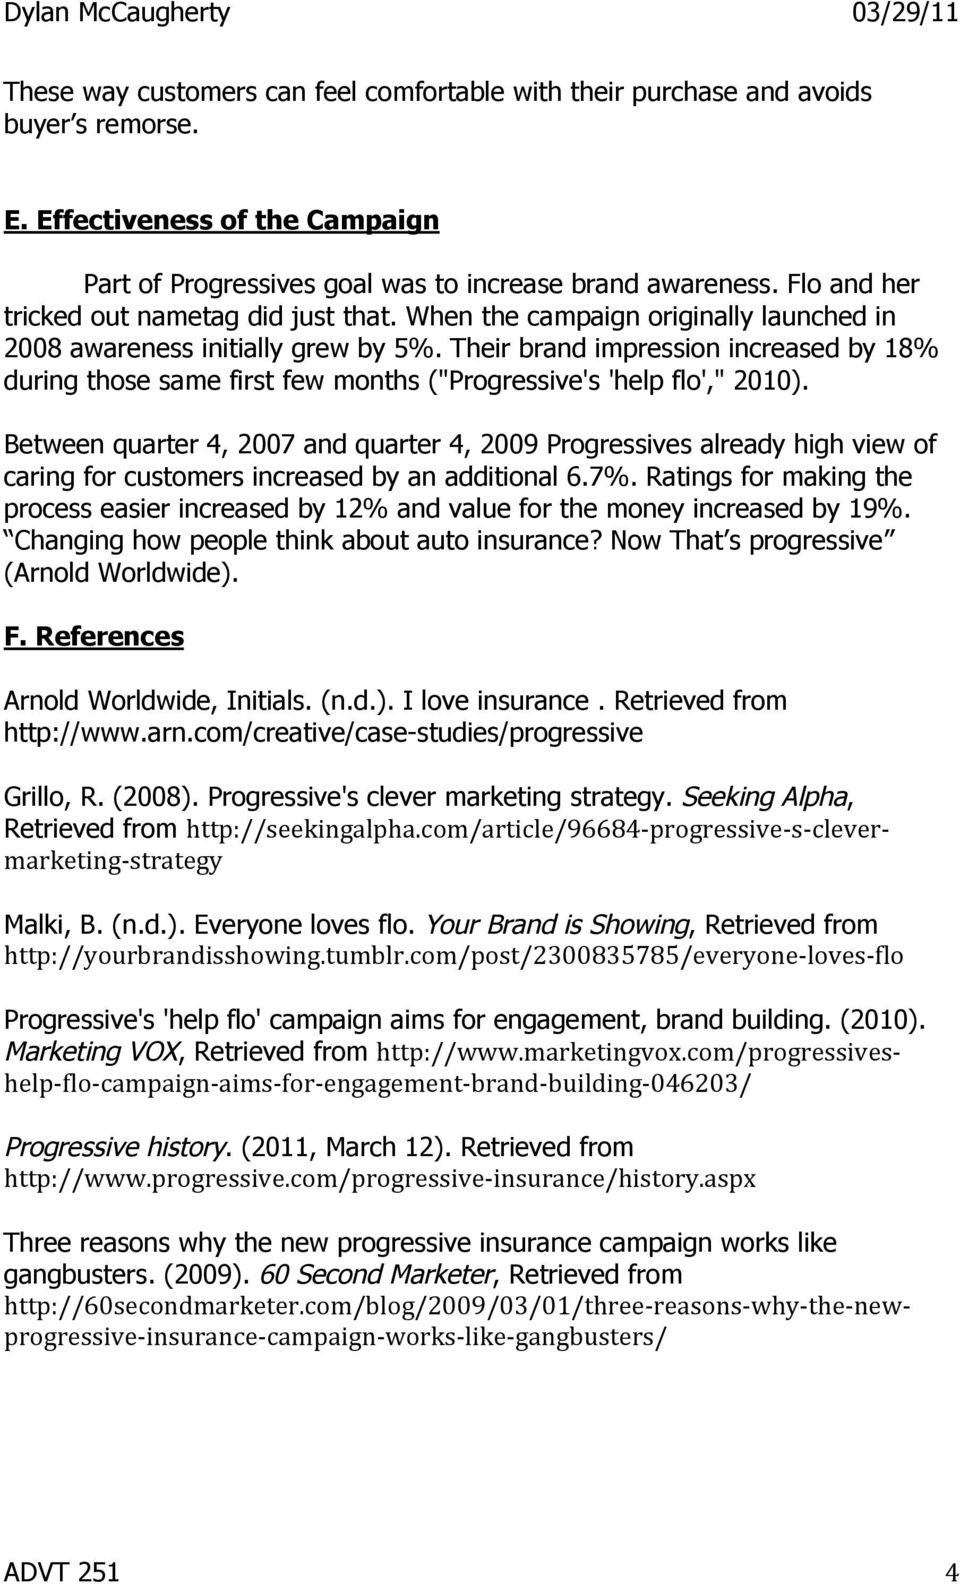 "Their brand impression increased by 18% during those same first few months (""Progressive's 'help flo',"" 2010)."